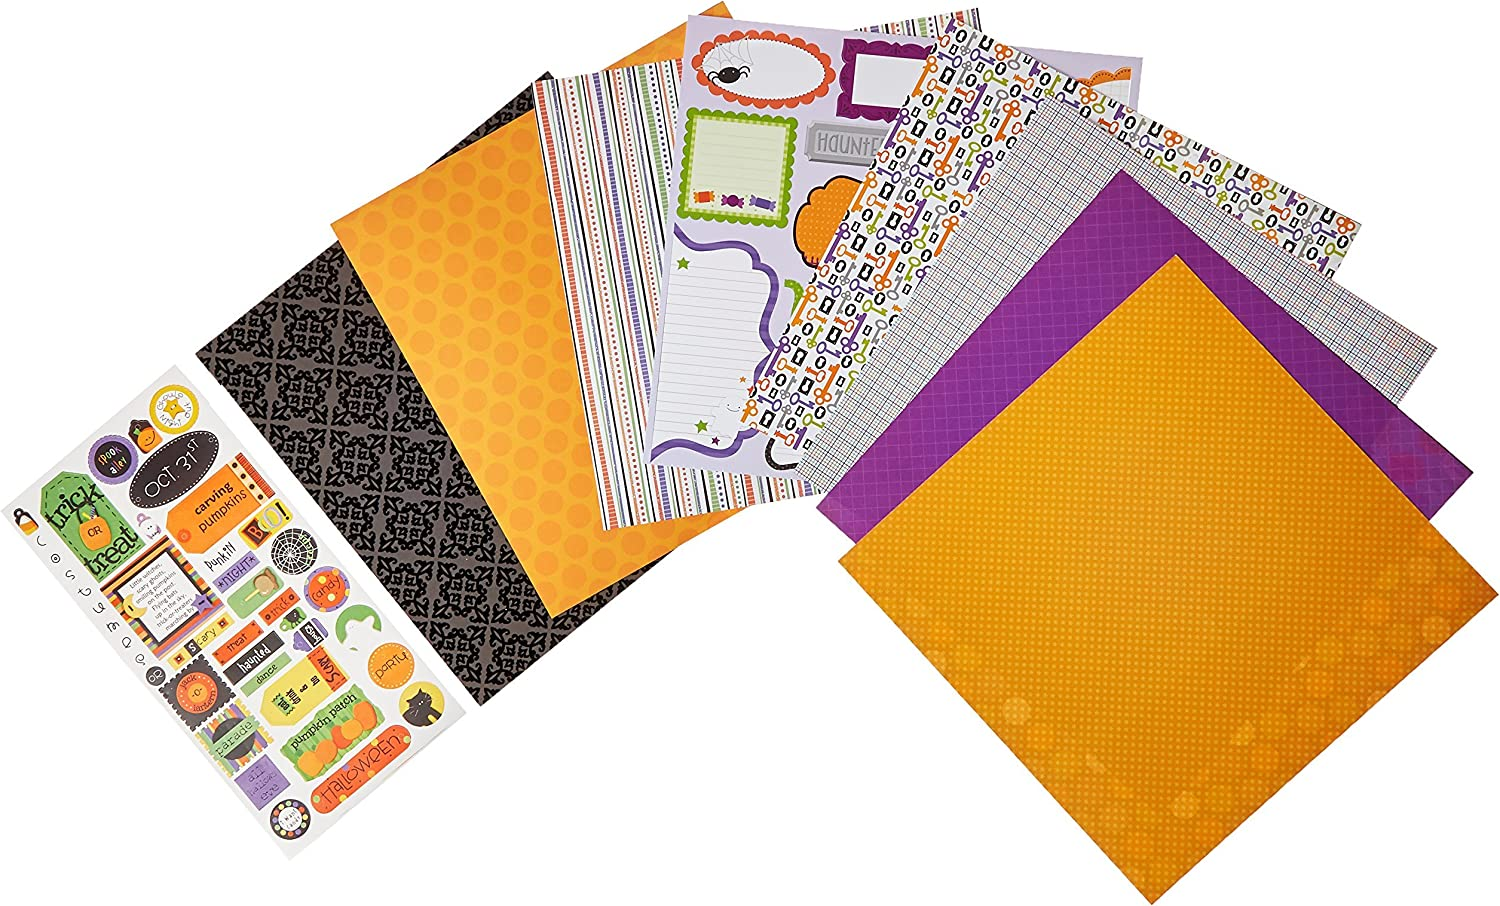 Halloween Cuties Scrapbook Premium Specialty Paper Single-Sided 12x12 Collection Includes 16 Sheets by Miss Kate Cuttables Pattern Paper Pack